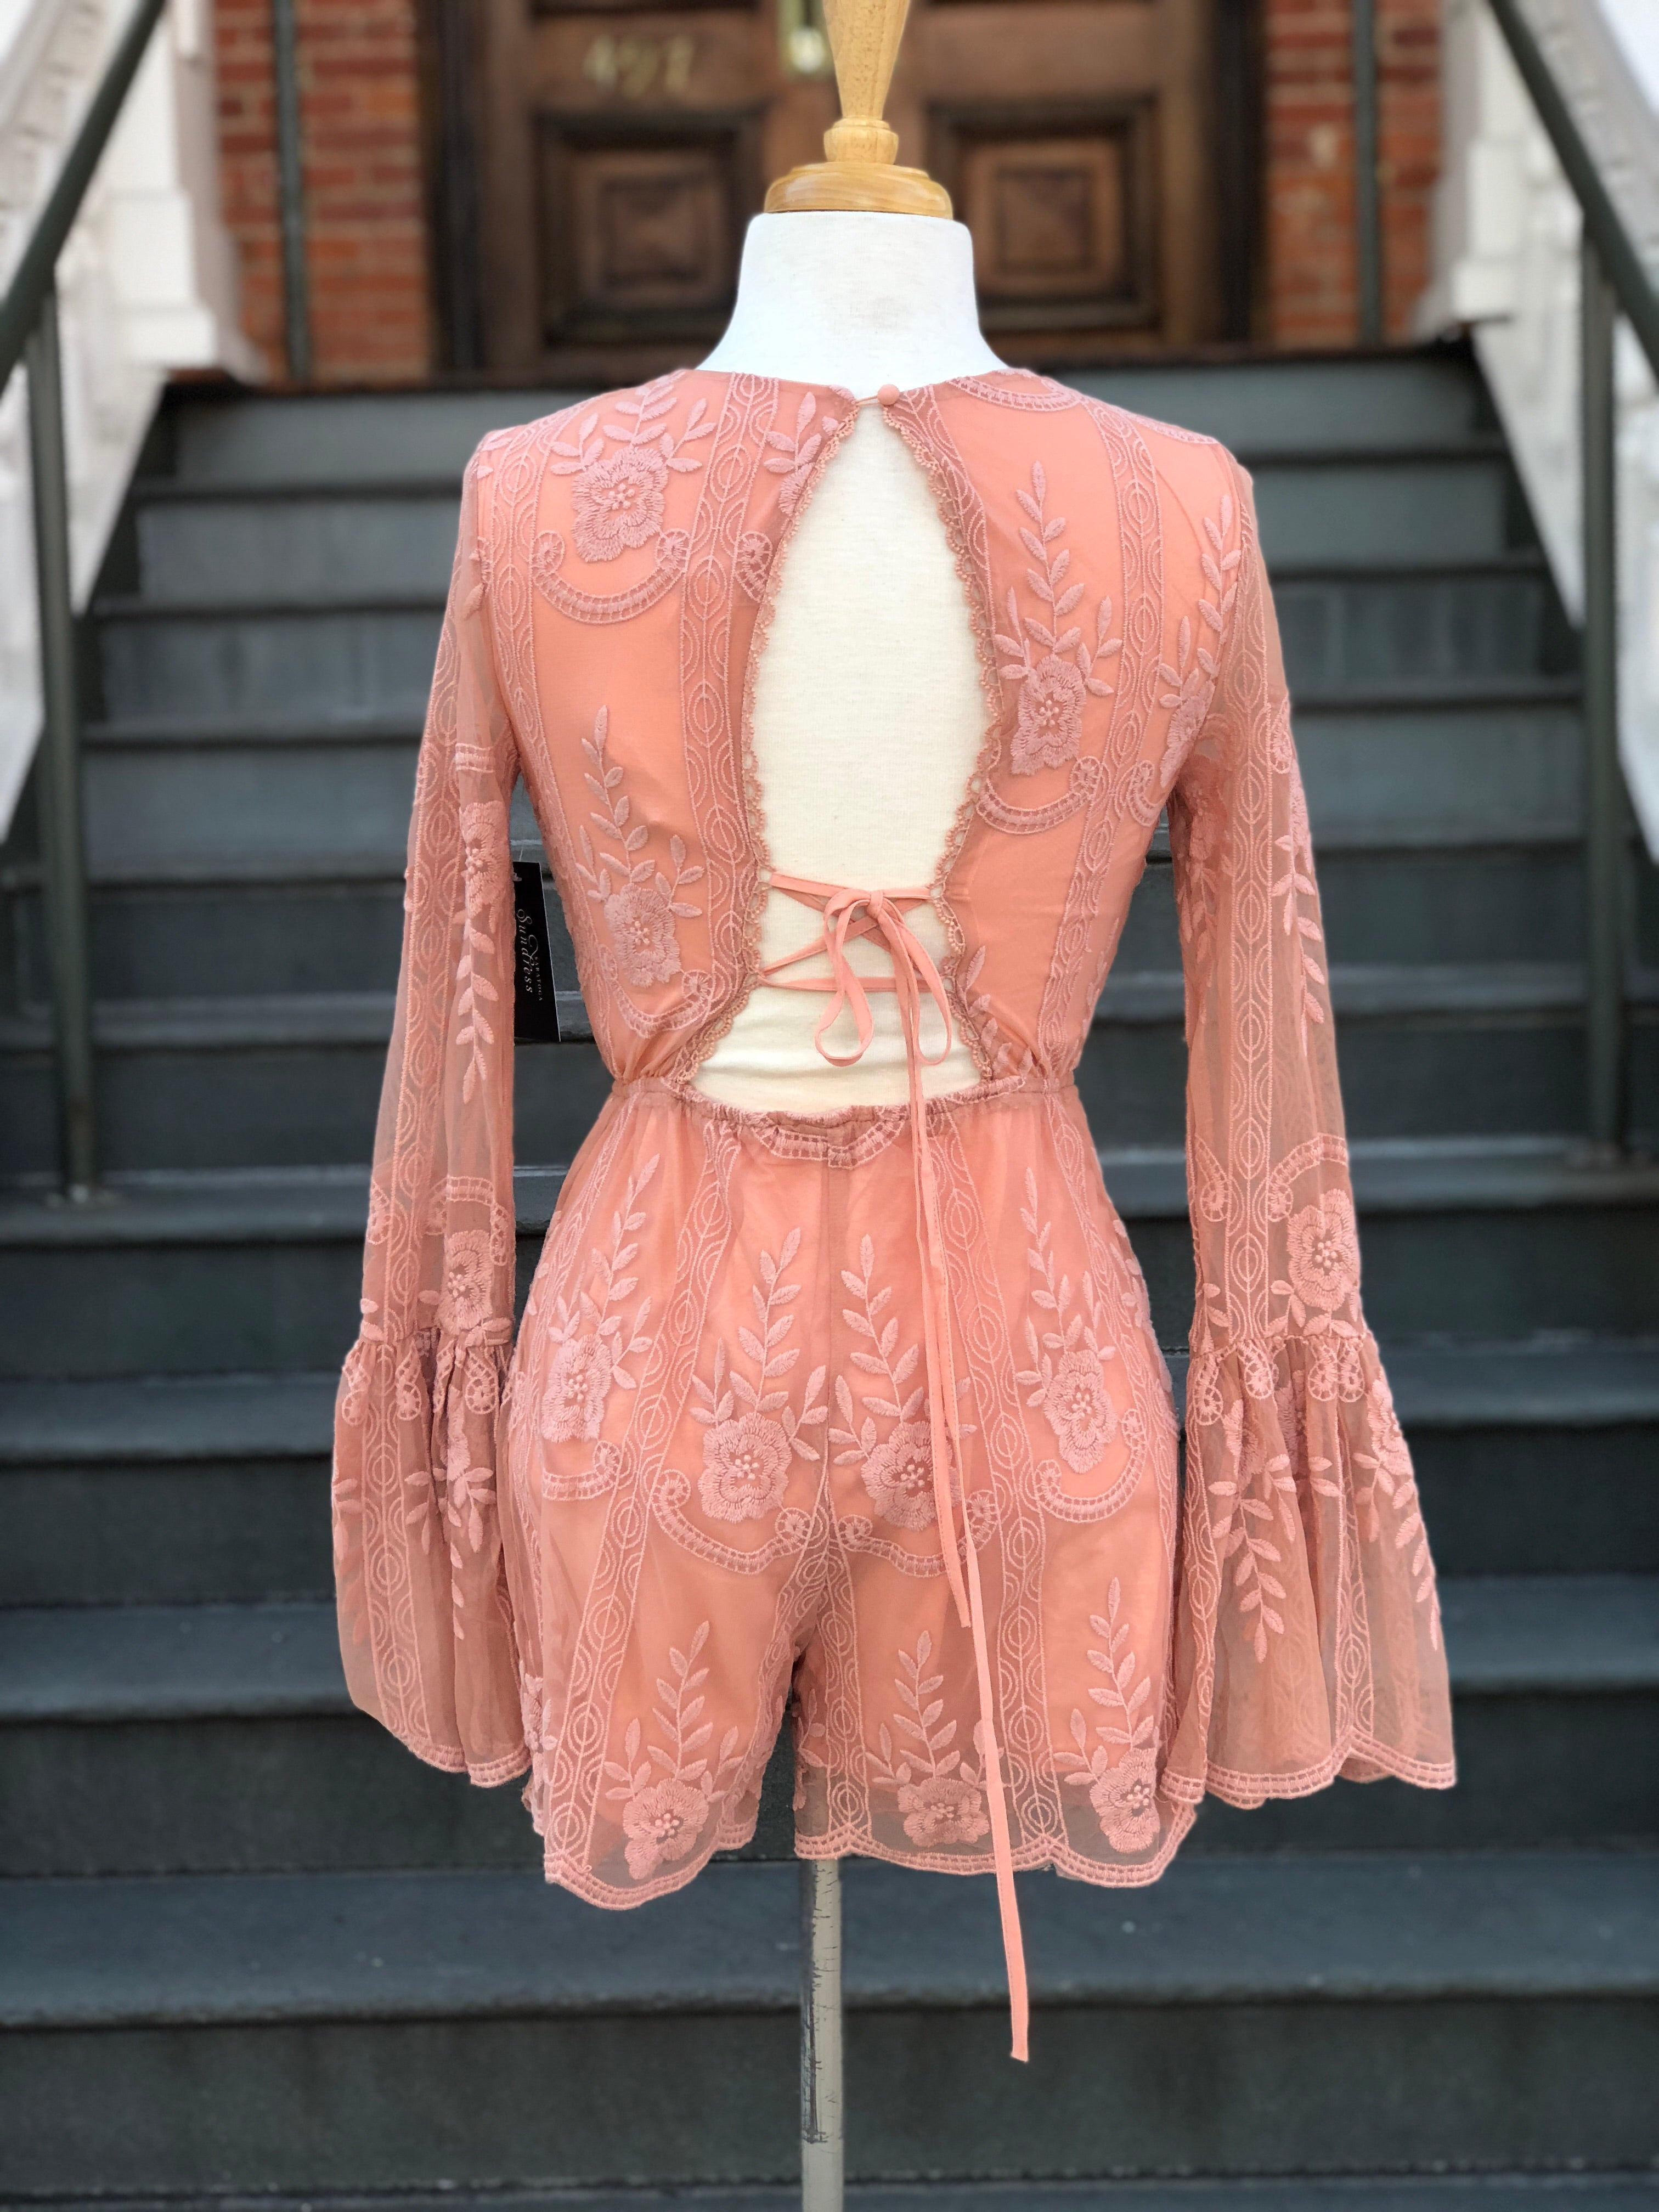 the Peach Schnapps romper